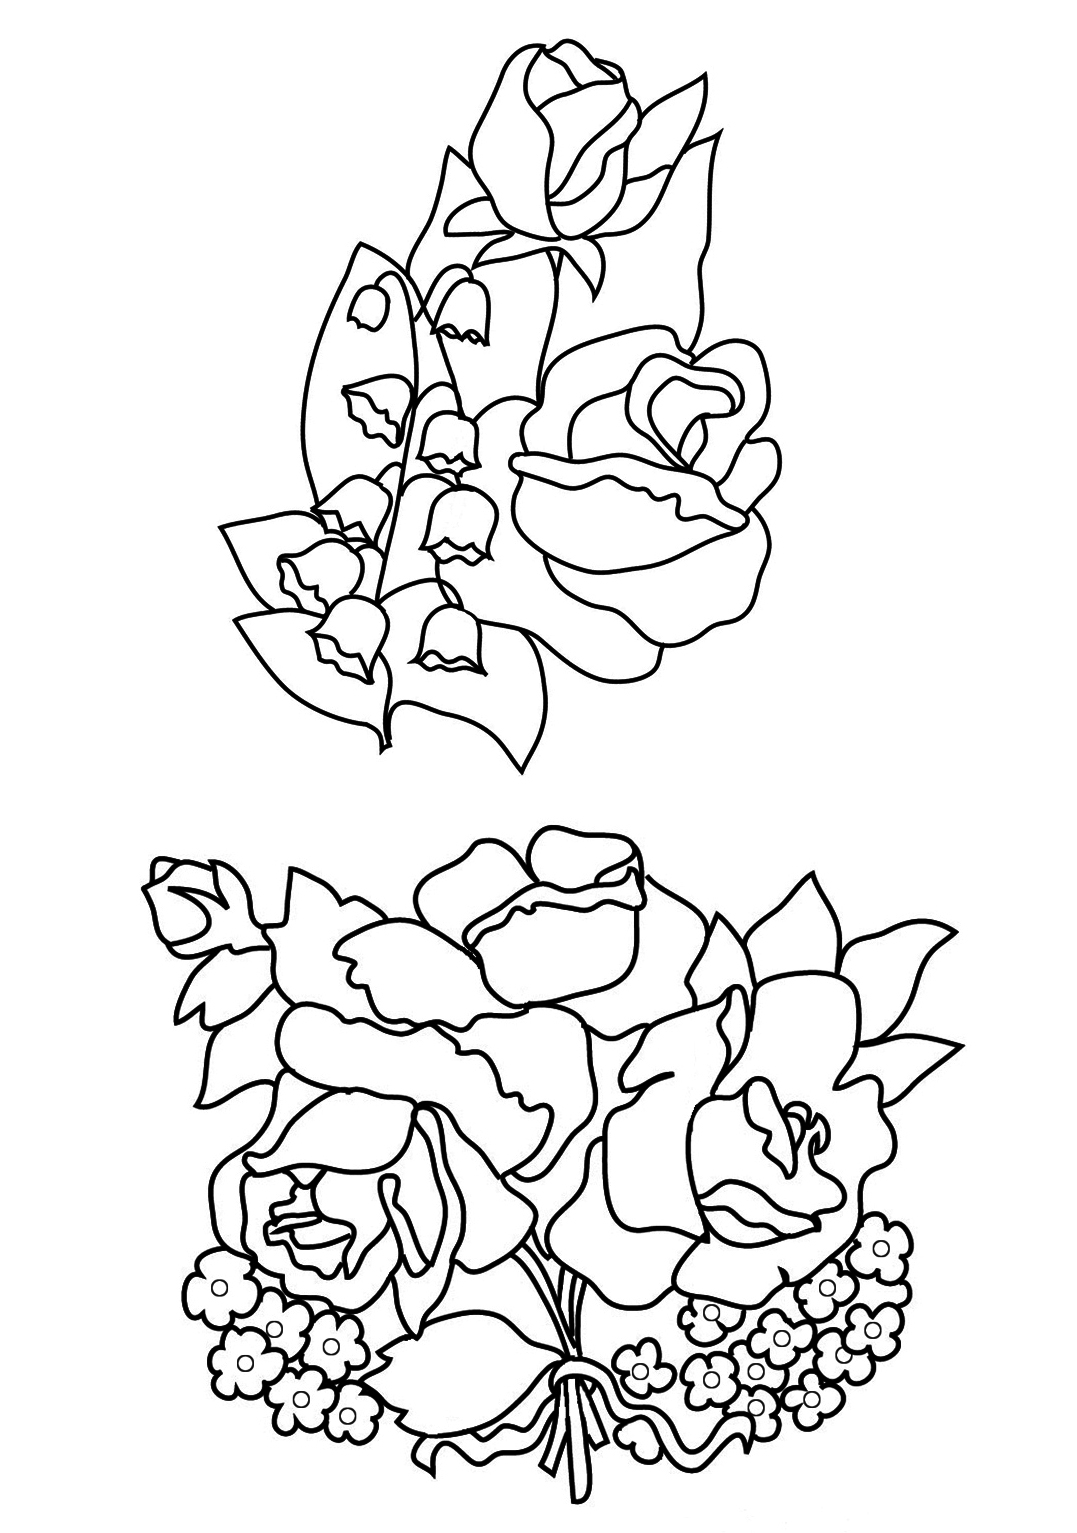 coloring book pages of roses - photo#15